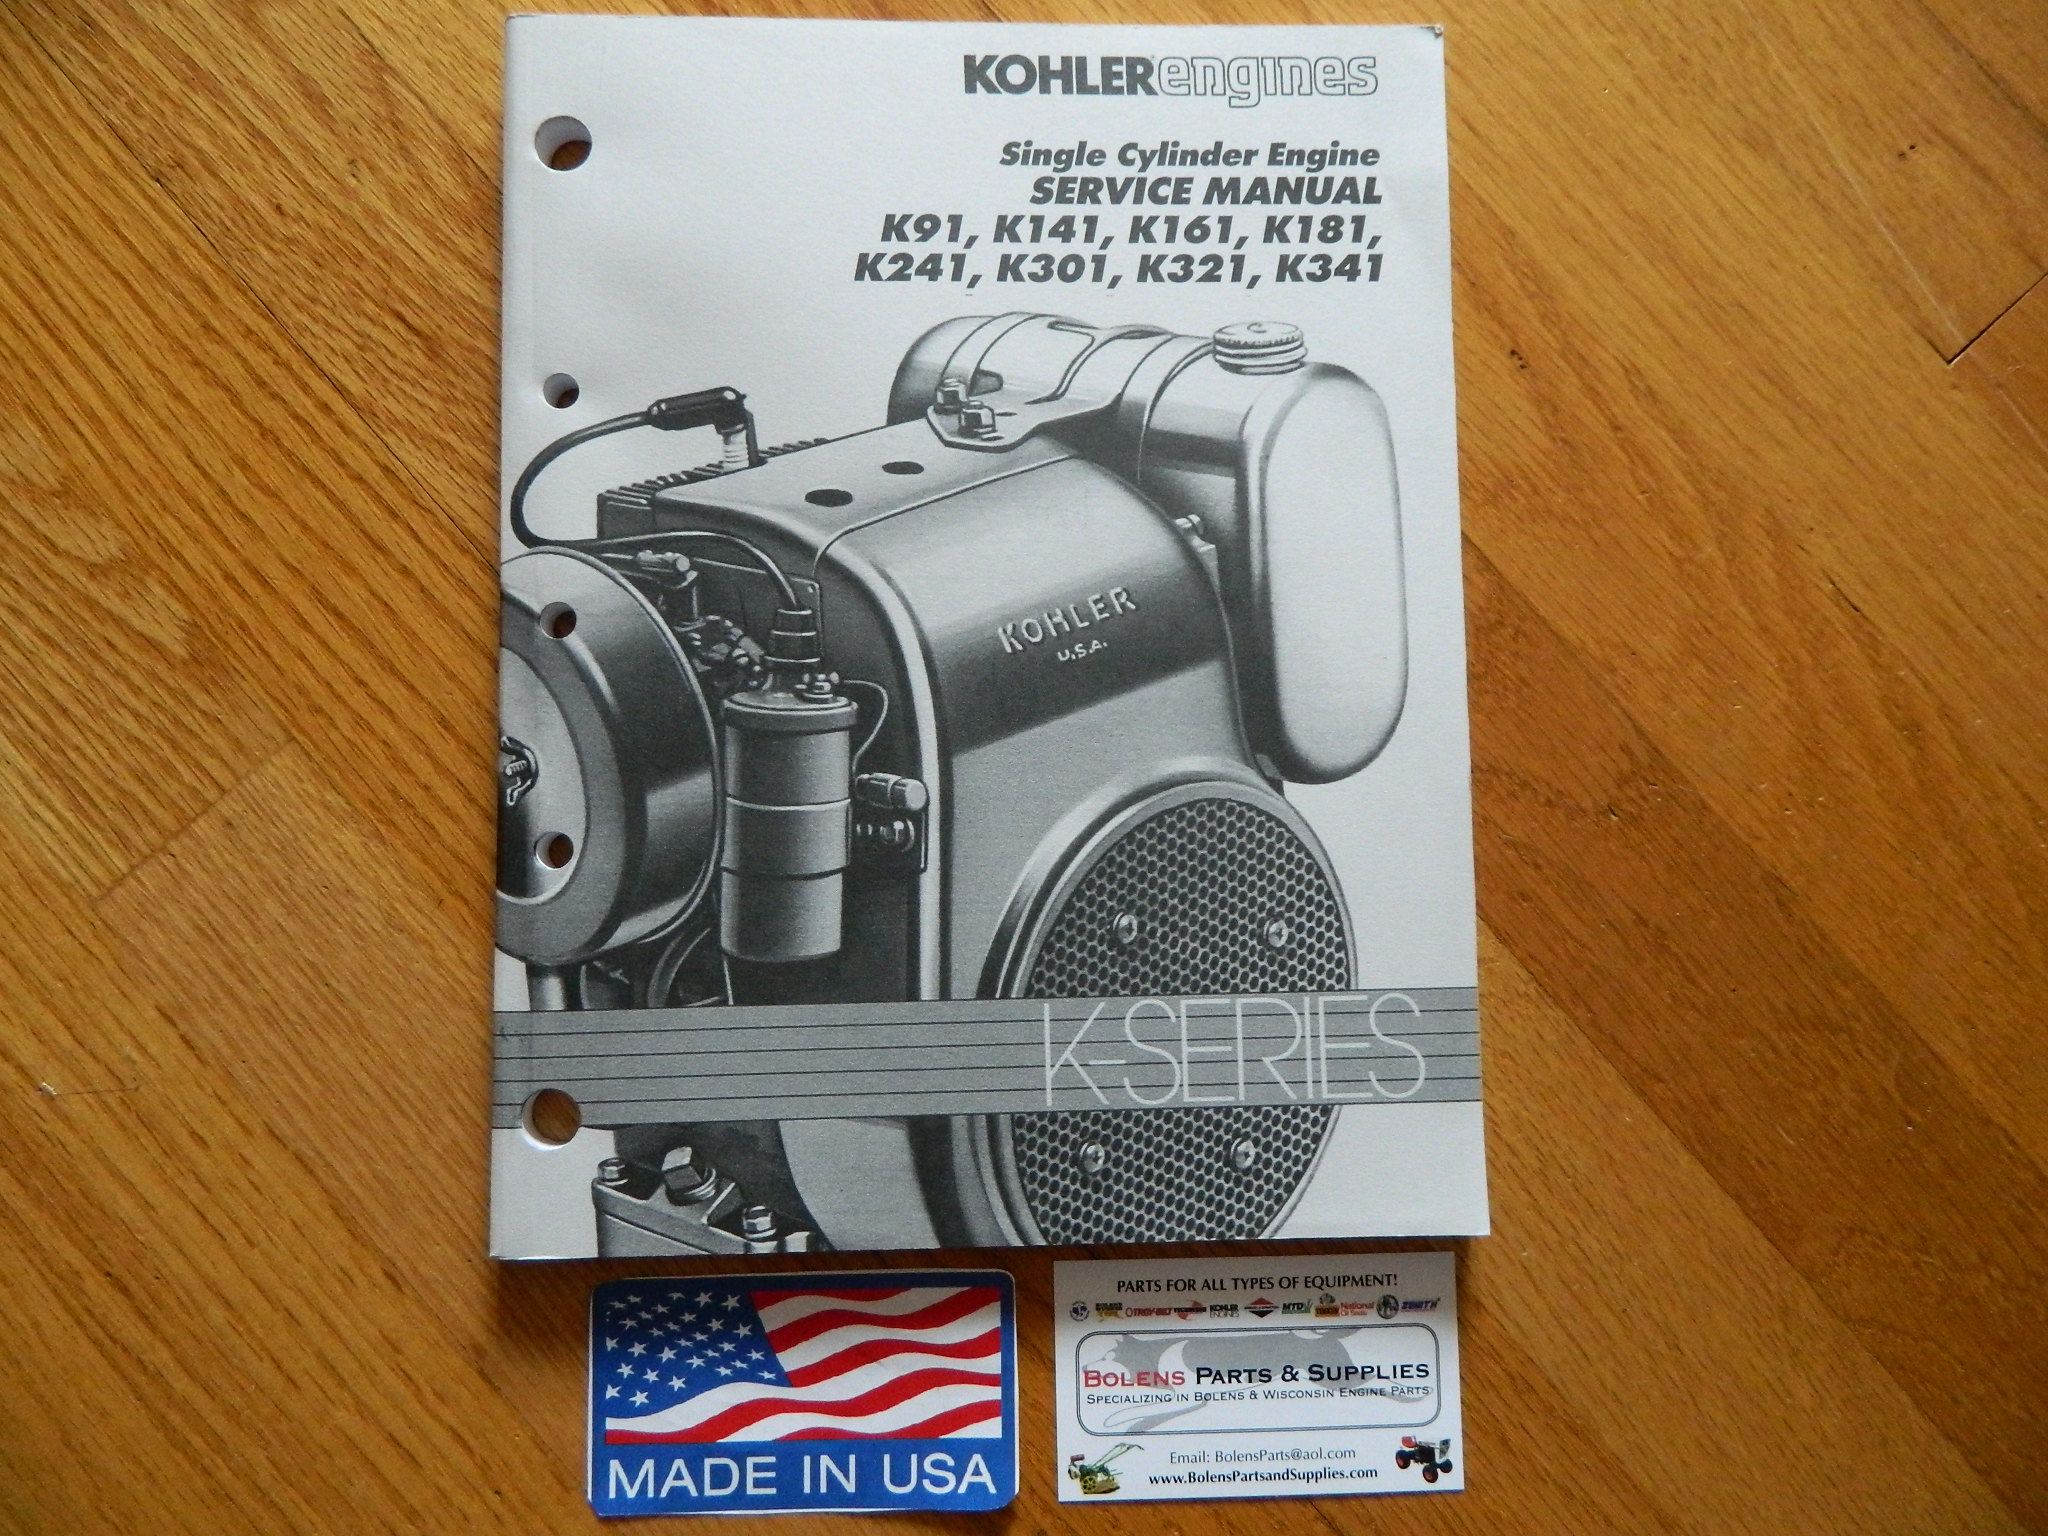 Kohler Engines Service Manual K341s Engine Diagram Small Parts Oem K Series K90 K91 K141 Rh Bolenspartsandsupplies Com Cv490 Maintenance